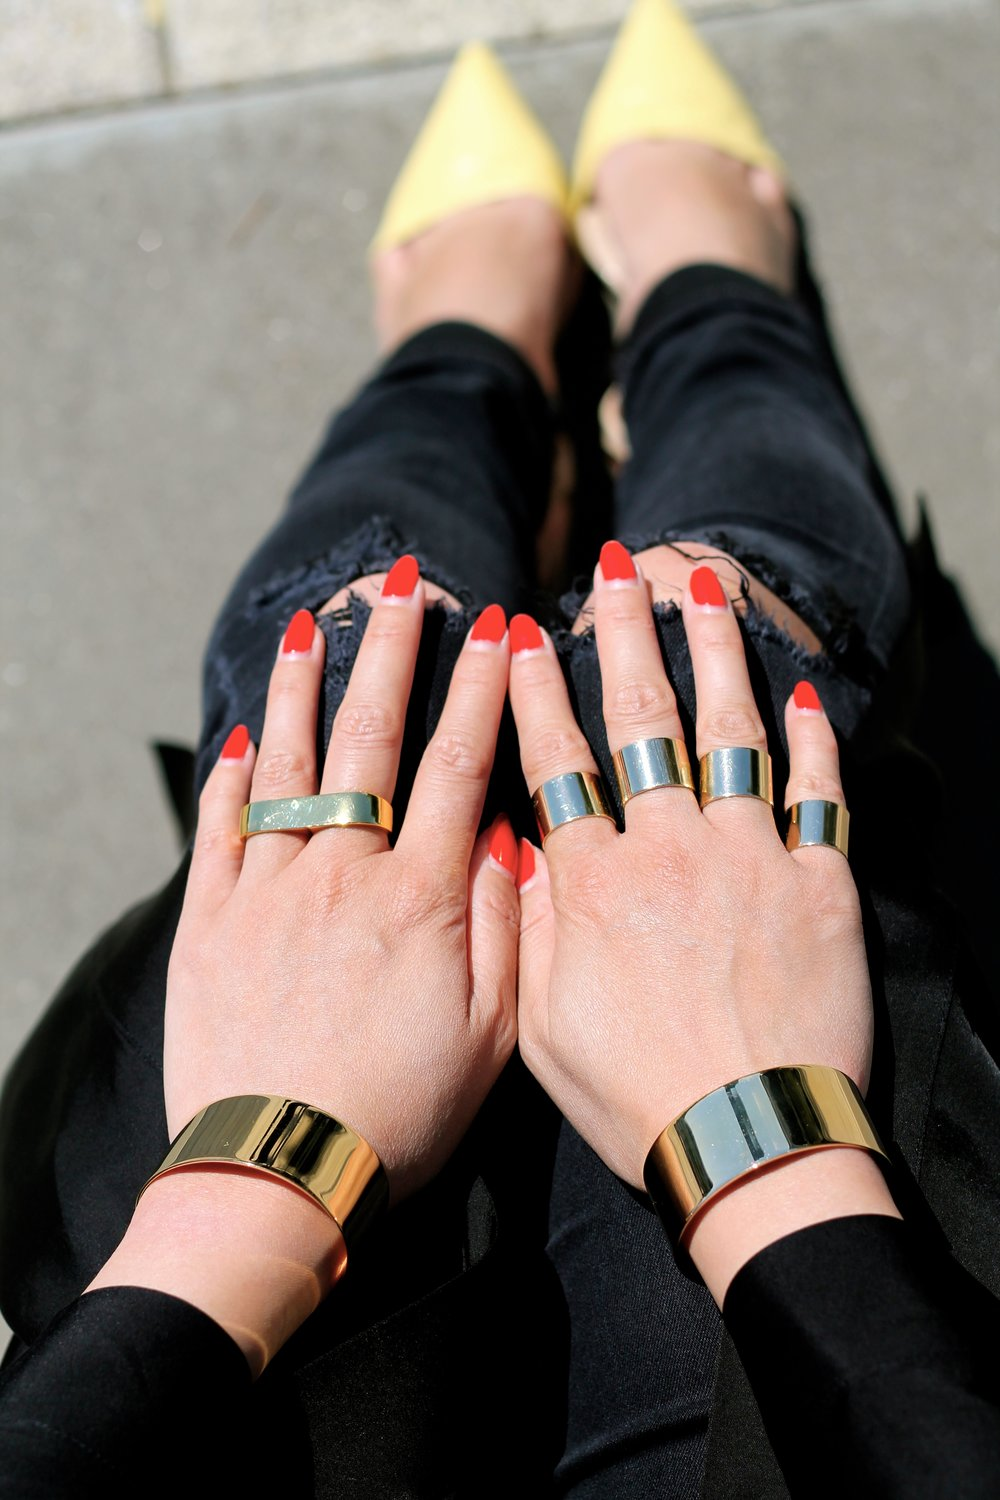 Svelte Metals cuffs, Maison Margiela and Erica Annenberg rings